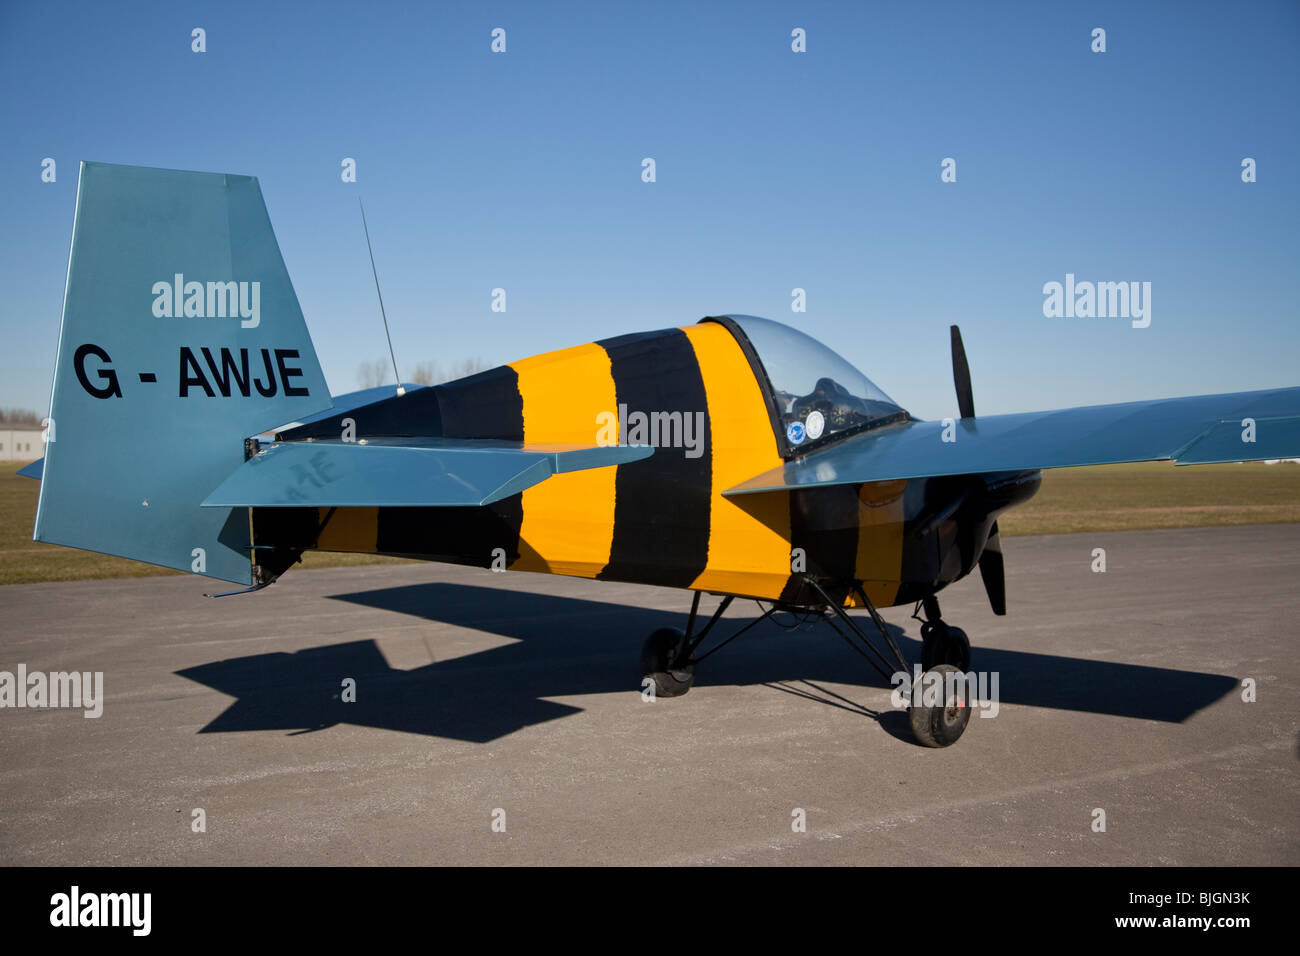 Slingsby Nipper, registered G-AWJE, and painted like a bumble bee, at Breighton - Stock Image